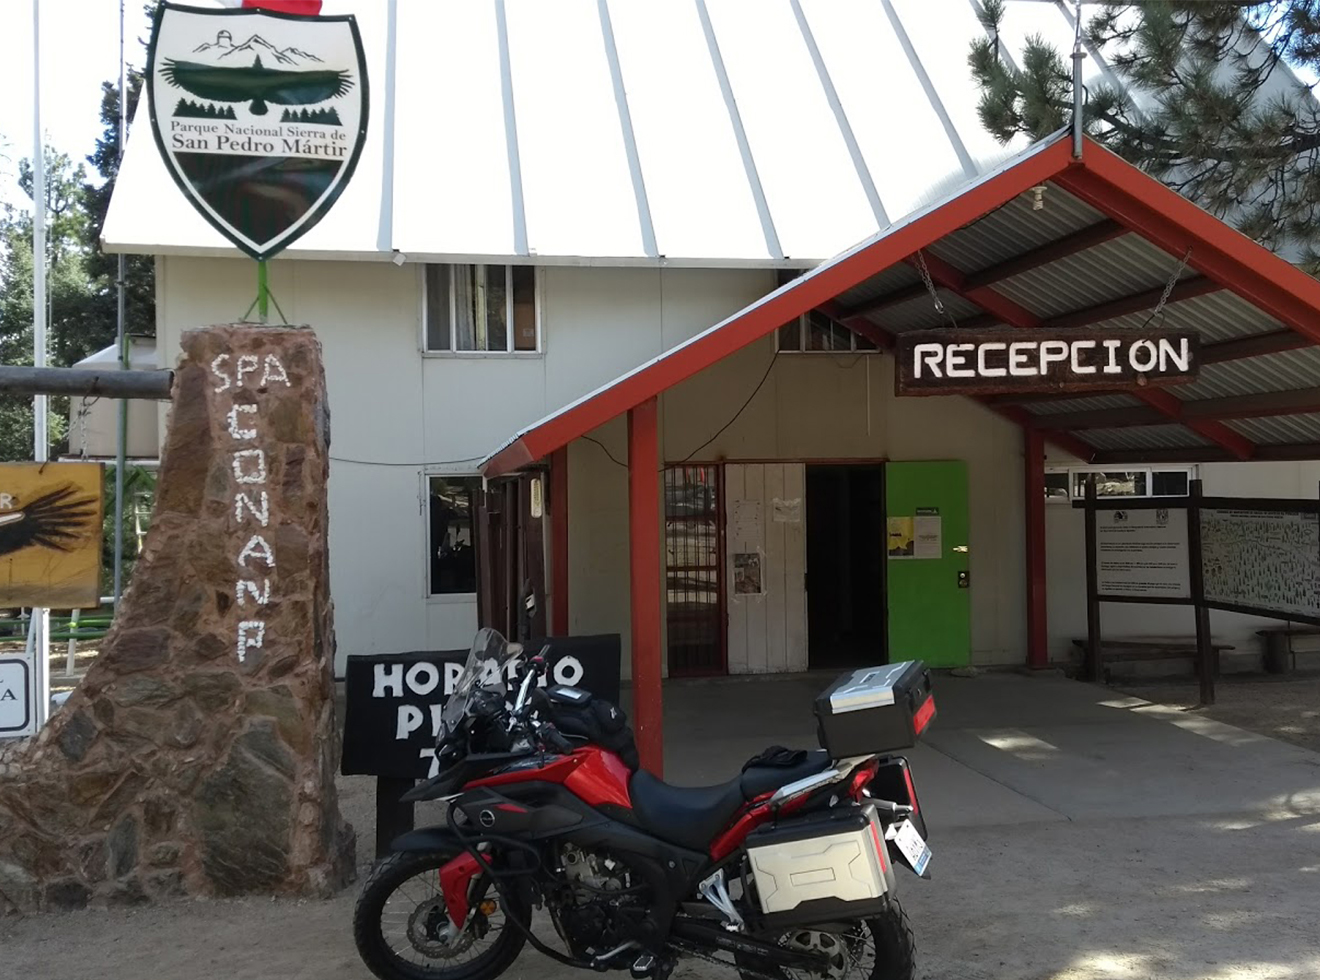 Park reception area in Sierra de San Pedro Mártir National Park, one of the few structures in the 170,000-acre wilderness